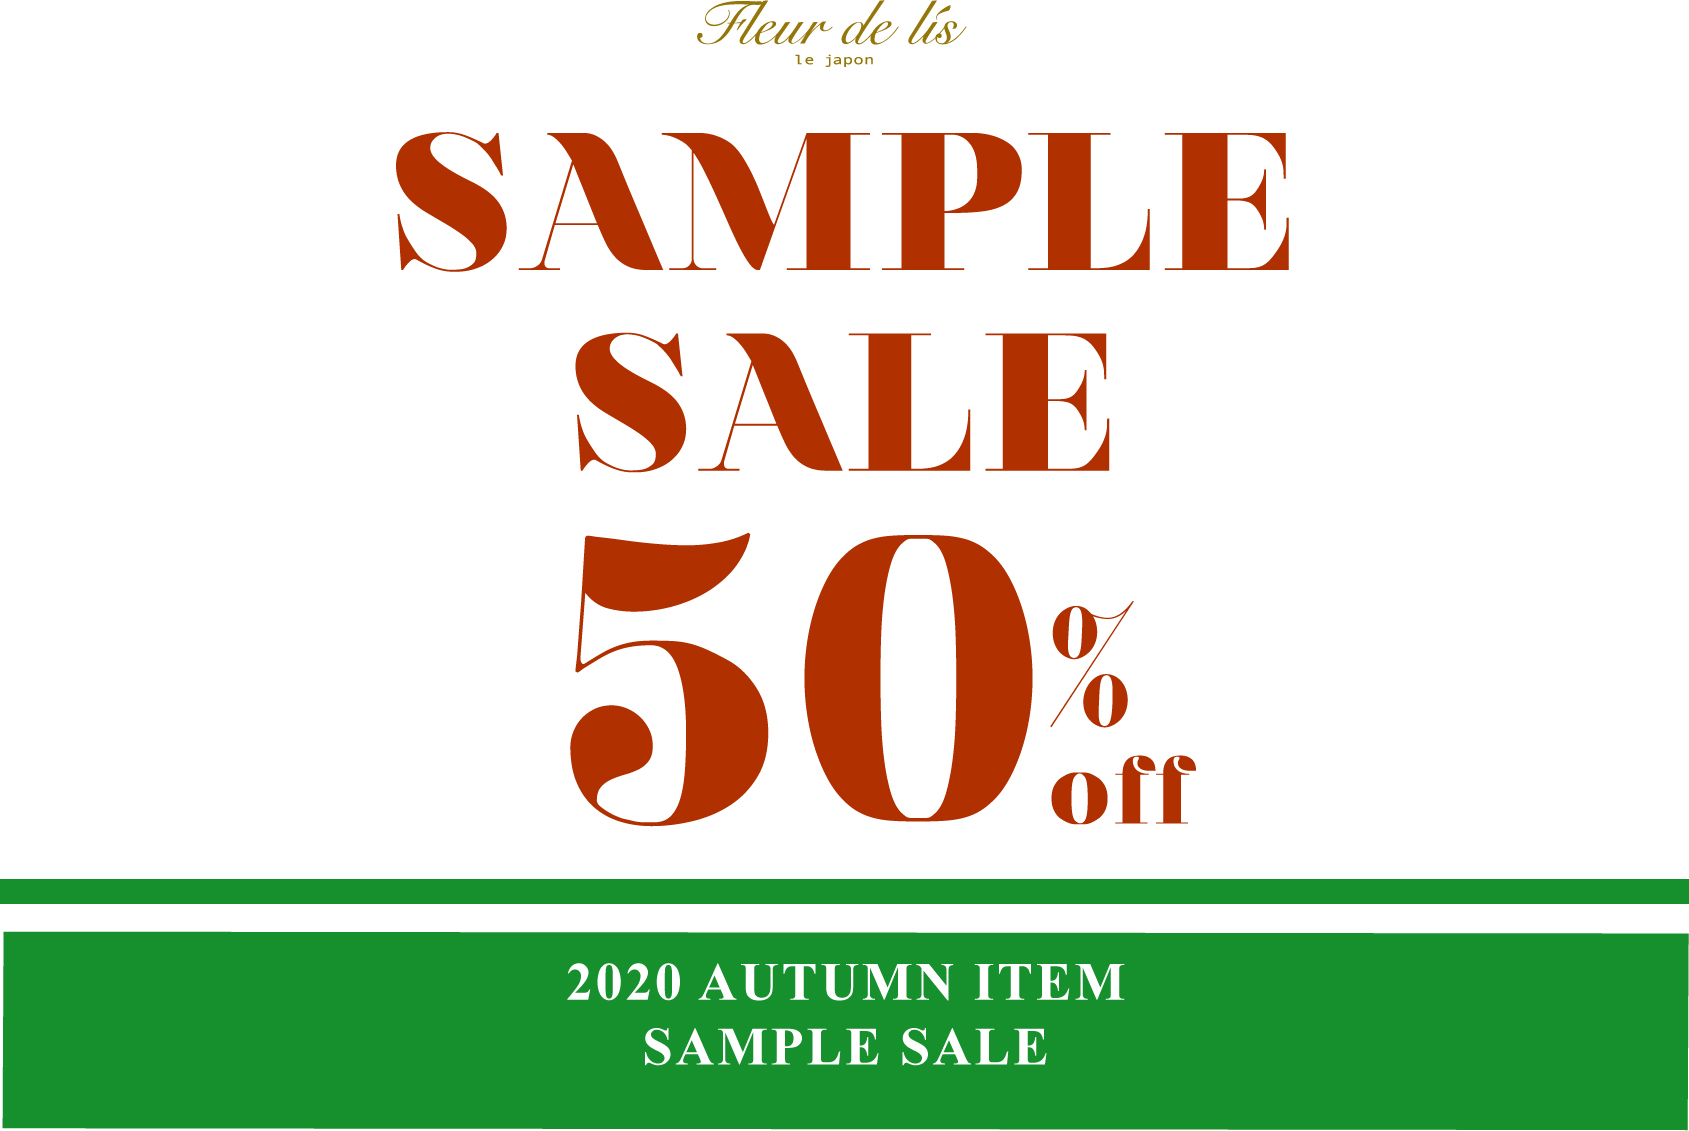 2020AUTUMN SAMPLE SALE 50%OFF